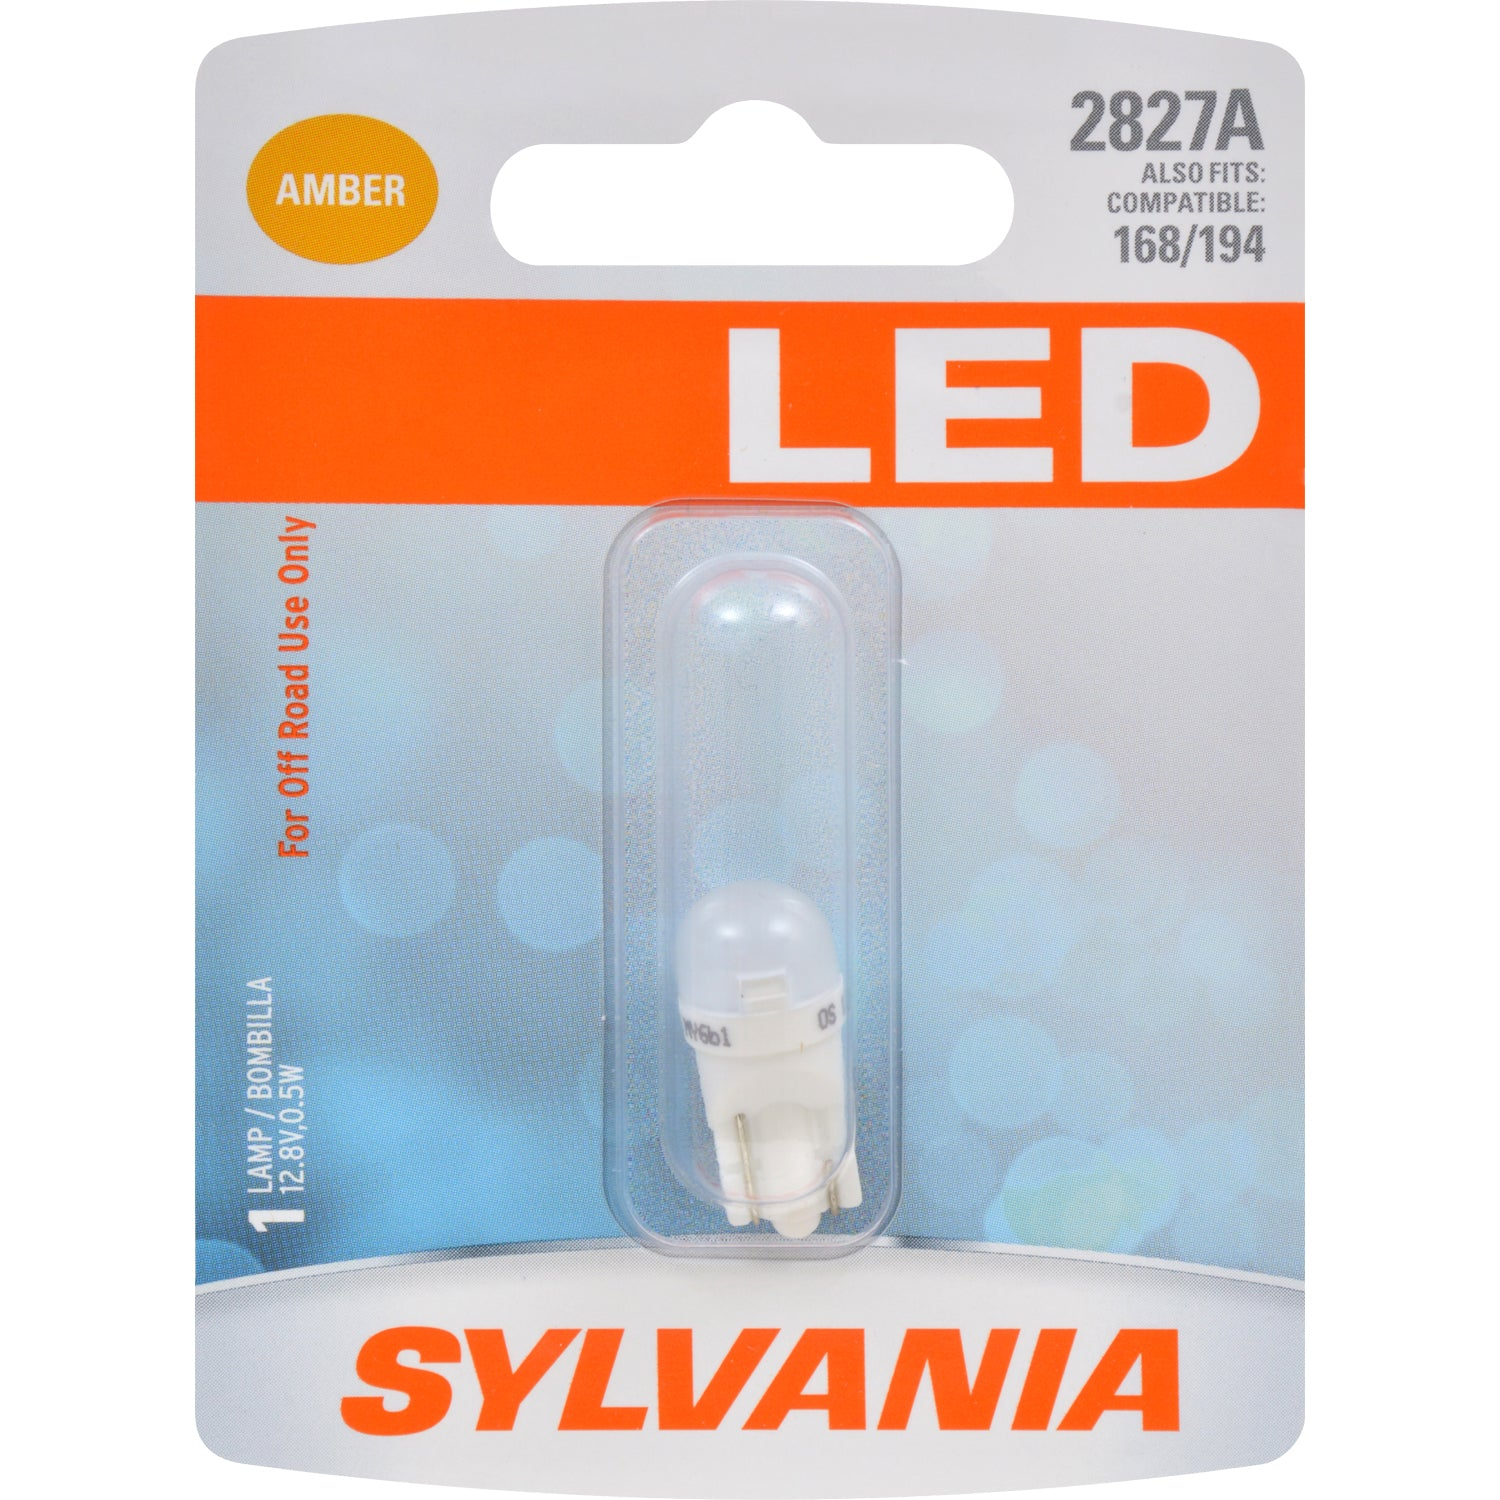 SYLVANIA 2827 T10 W5W Amber LED Automotive Bulb - also fits 168 & 194